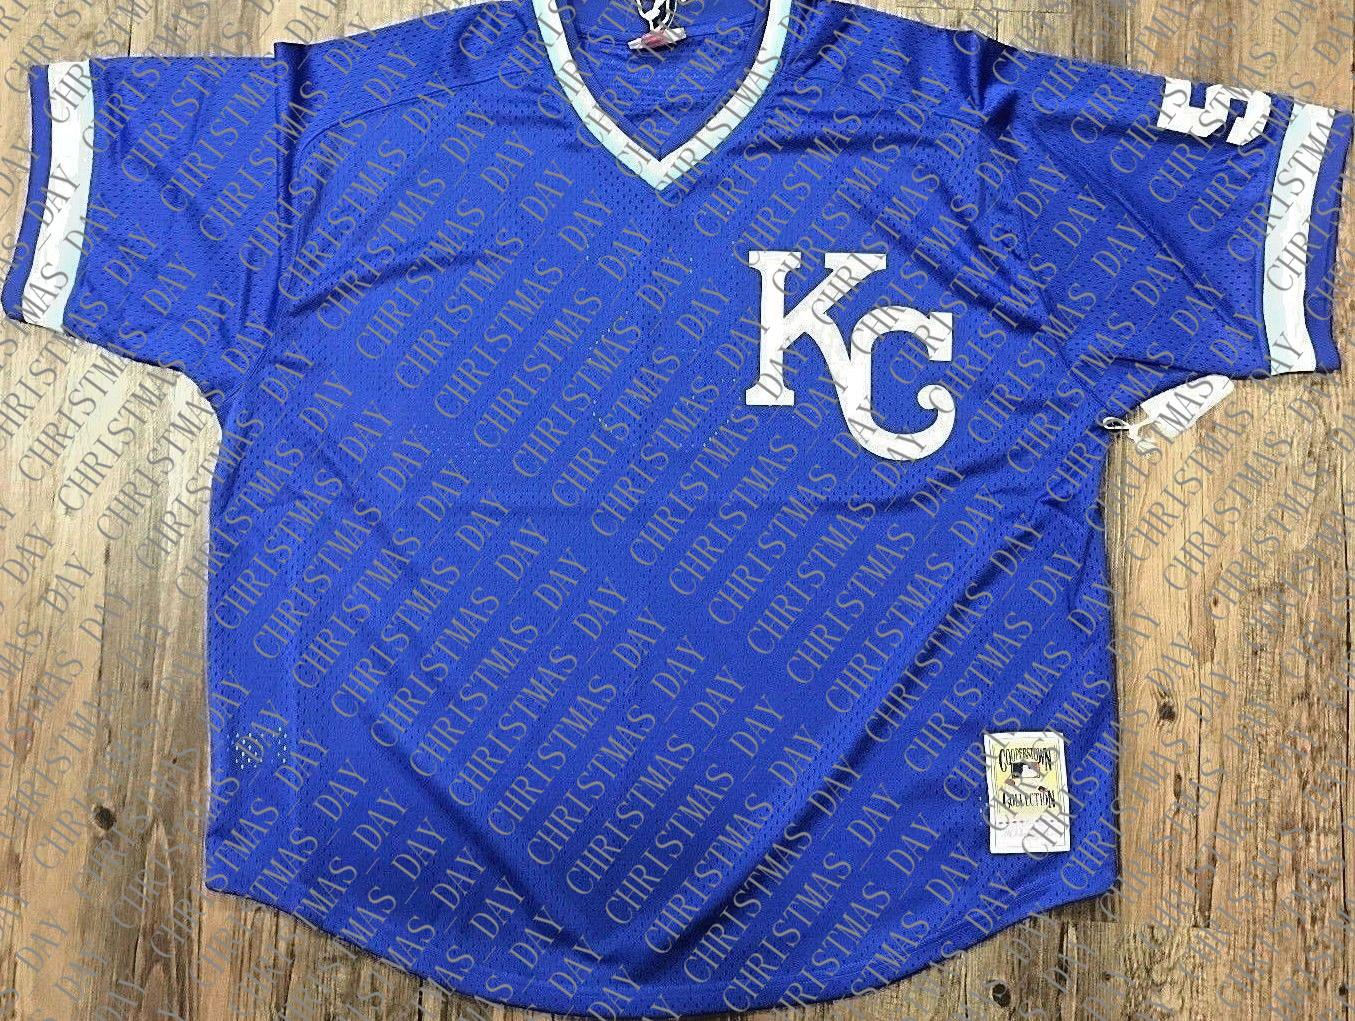 100% embroidery George Brett 1989 Mesh BP Jersey Stitched Customize any number name MEN XS-5XL NCAA JERSEY